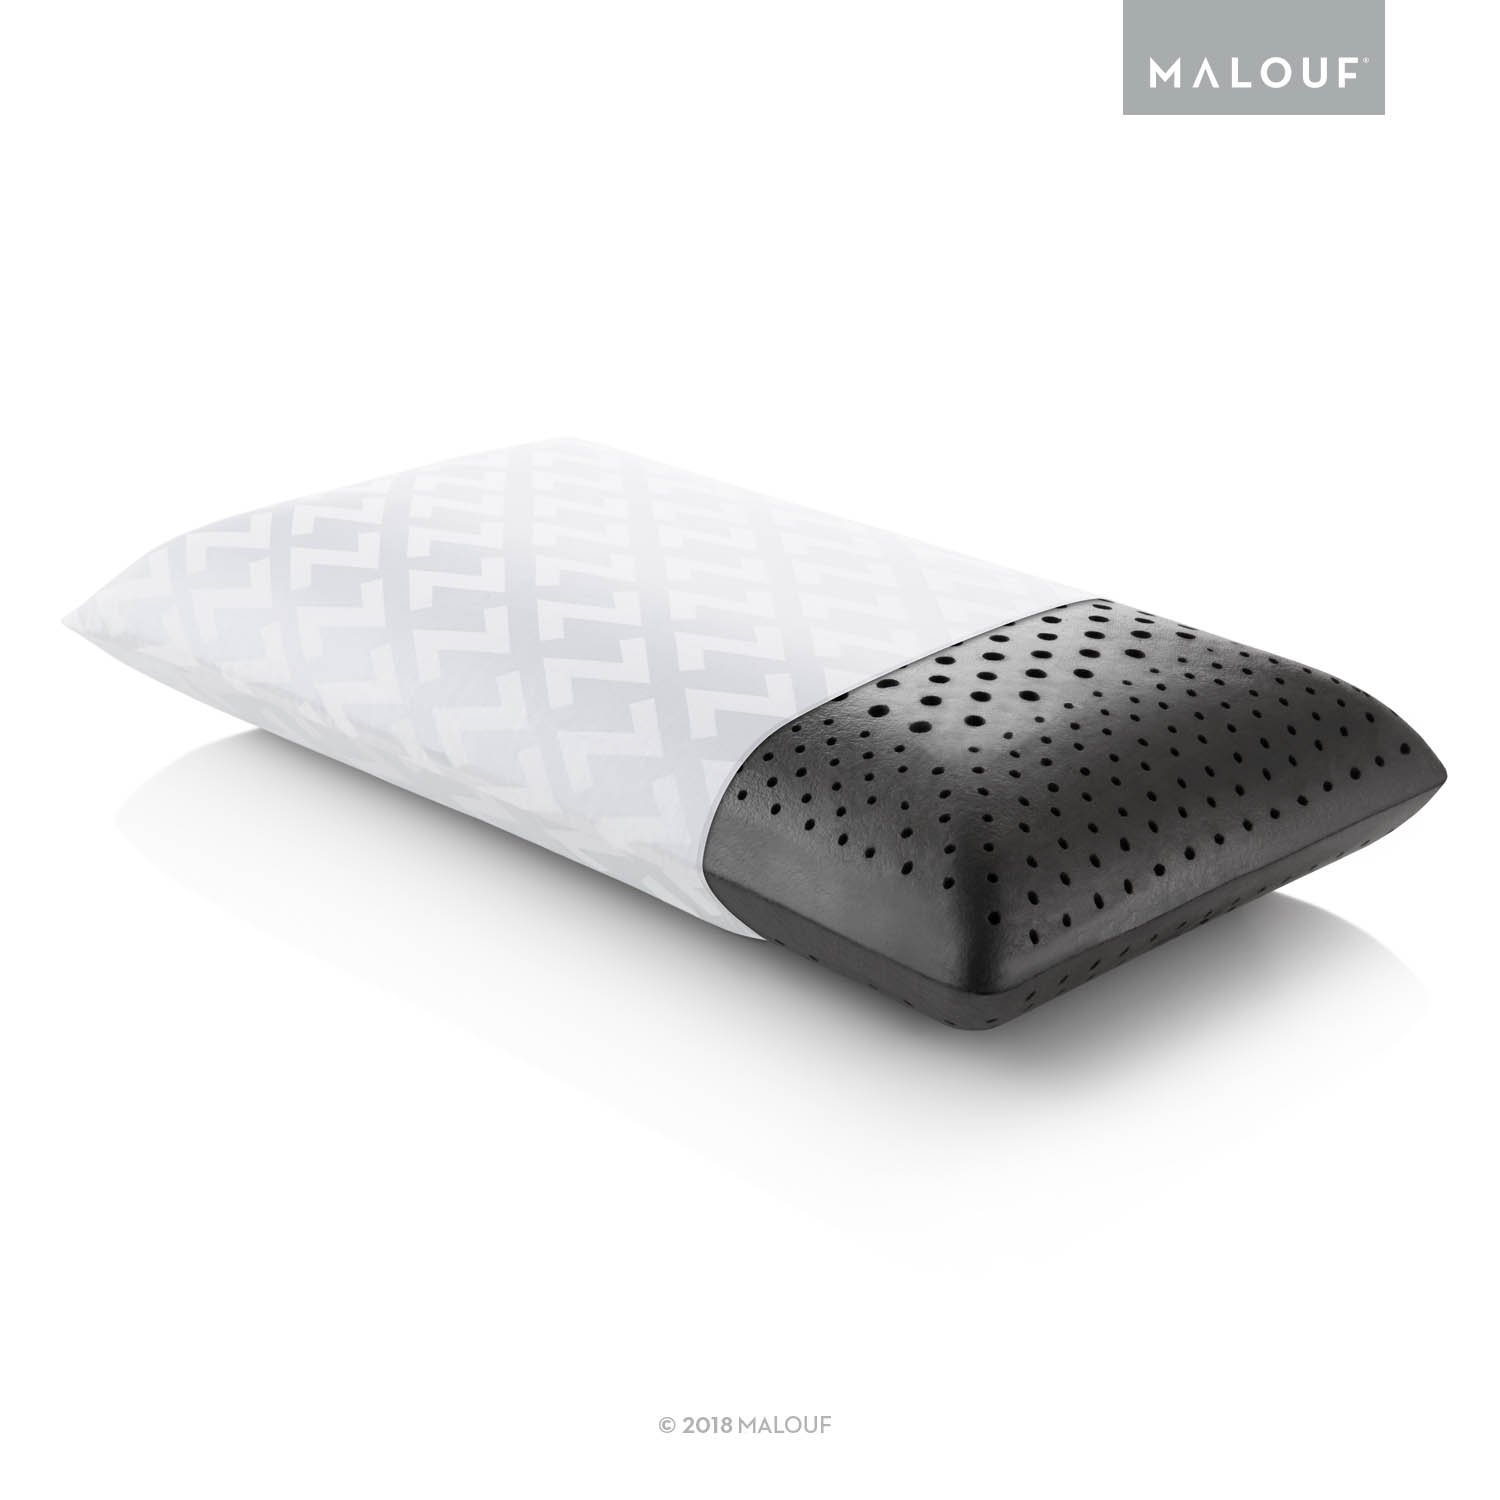 Z Zoned ACTIVEDOUGH Pillow - Infused with Bamboo Charcoal - Feels Like Blend of Latex and Memory Foam - Mid Loft - KingÂ